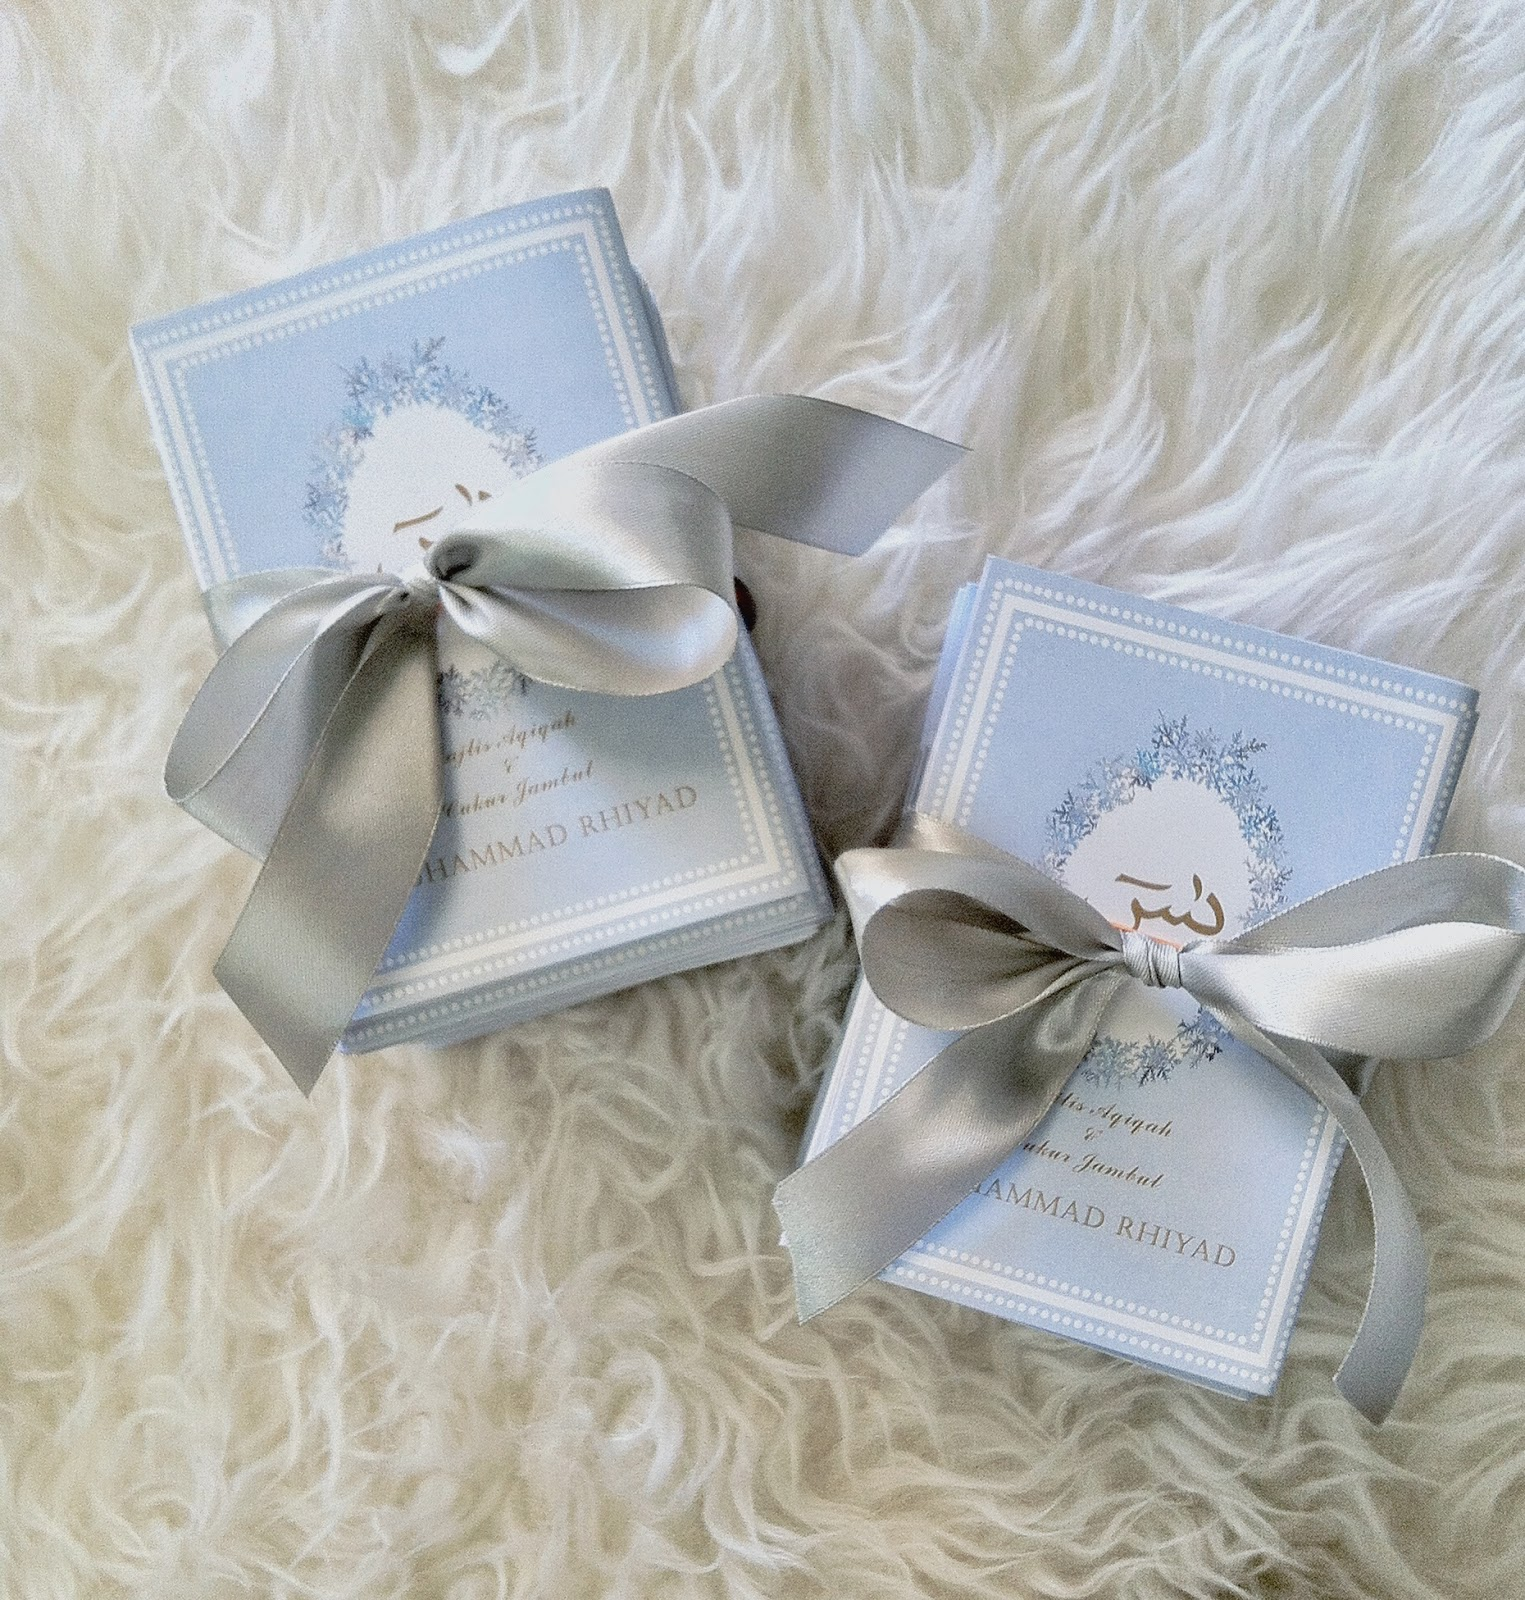 Oh pretty please baby dior inspired design doorgifts for for Idea door gift cukur jambul